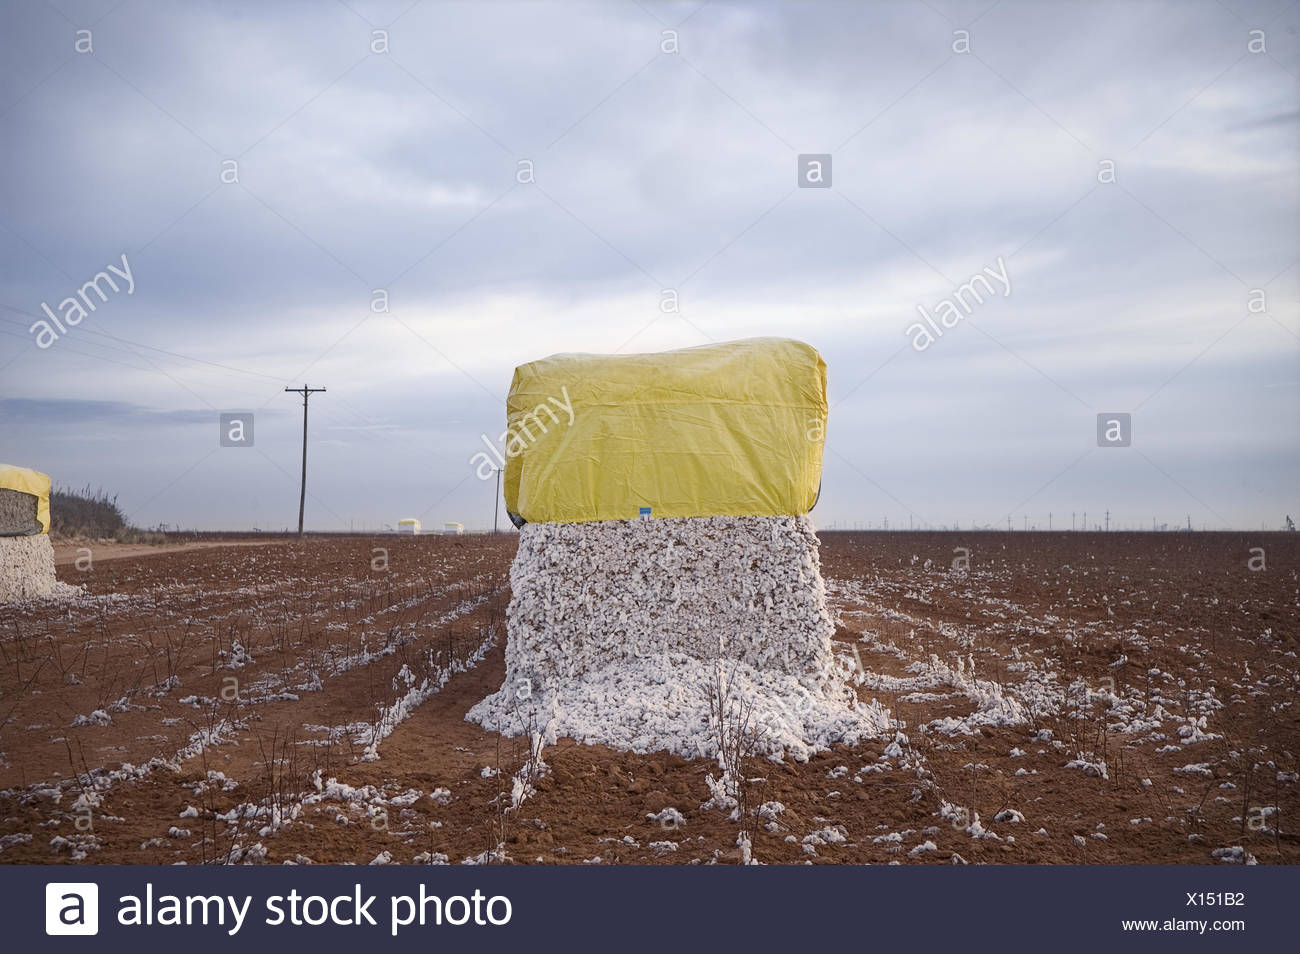 A bale of cotton sits waiting to be taken to the gin. - Stock Image